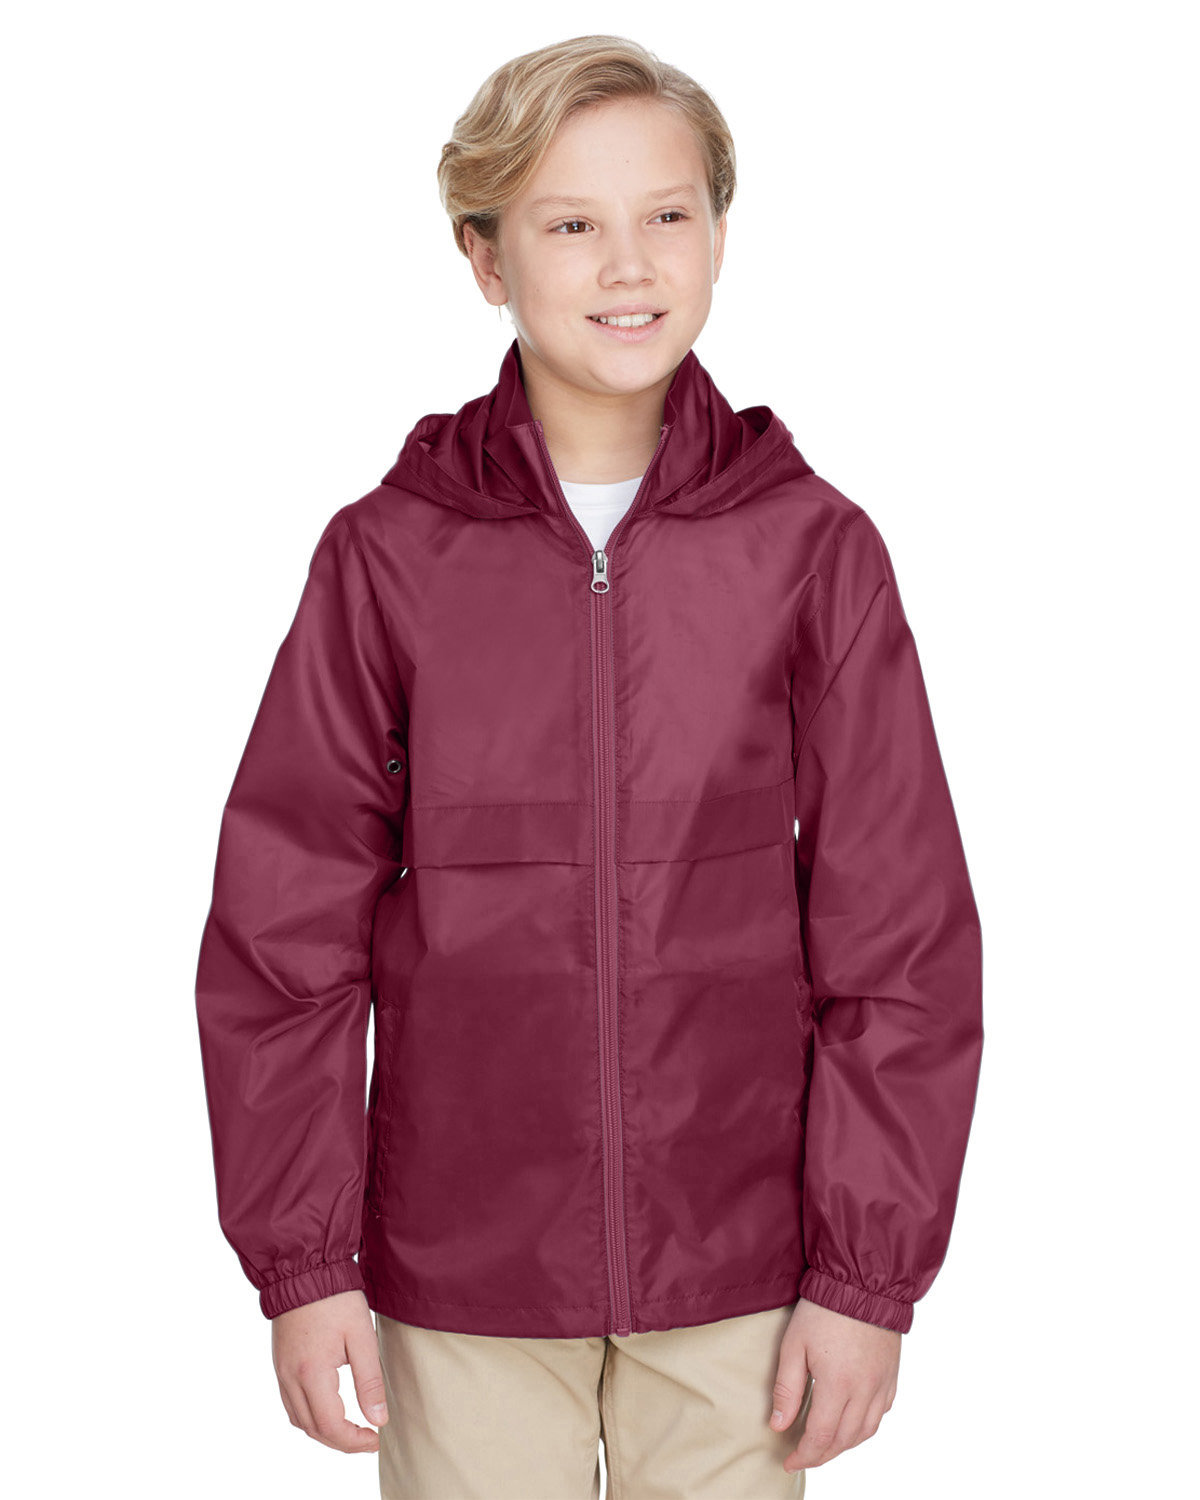 Team 365 Youth Zone Protect Lightweight Jacket SPORT MAROON